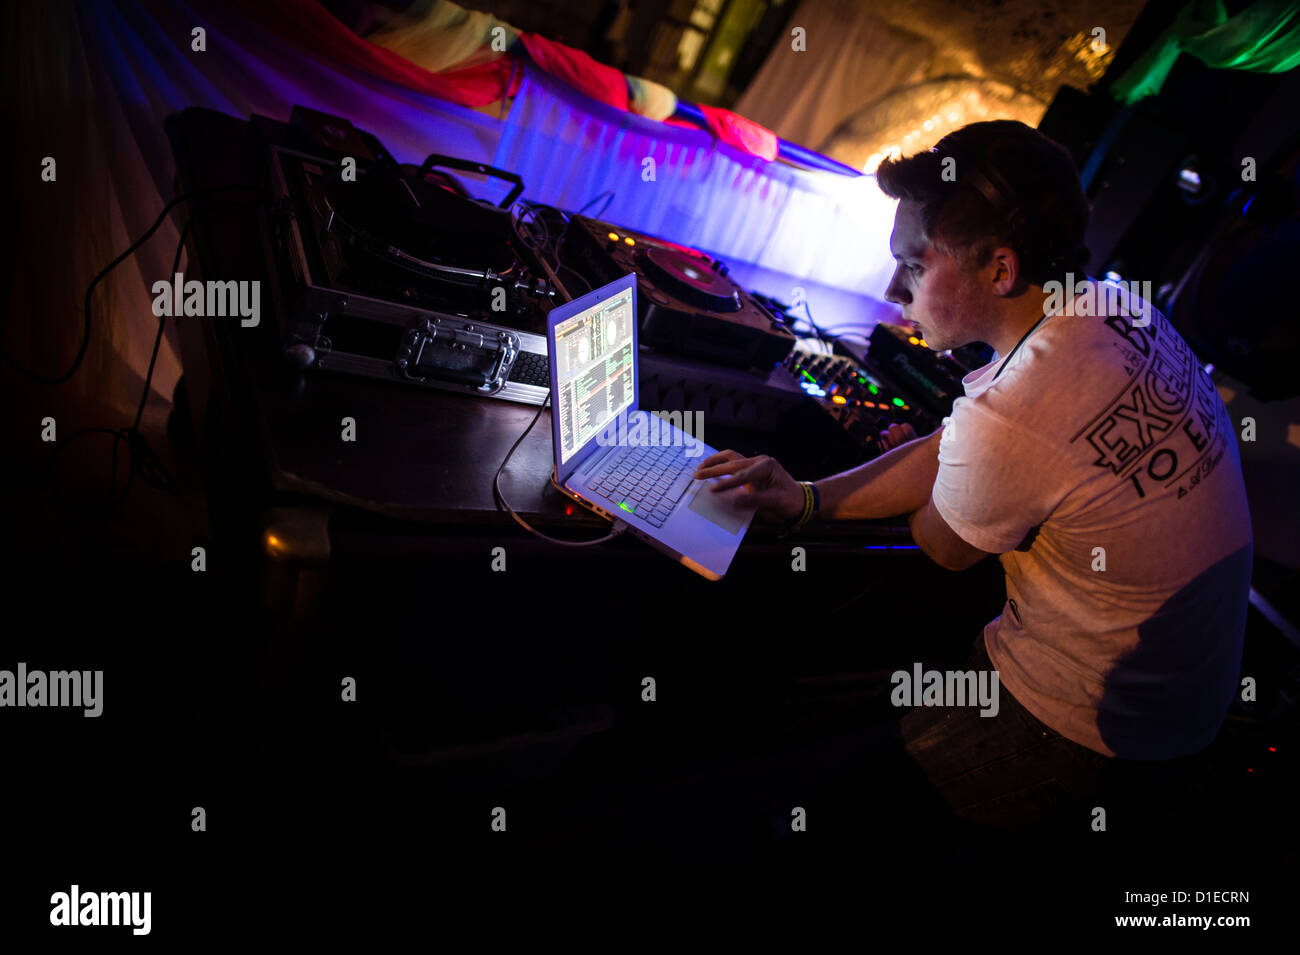 A DJ lining up music on his laptop computer to play at a dance party rave disco club night , UK - Stock Image